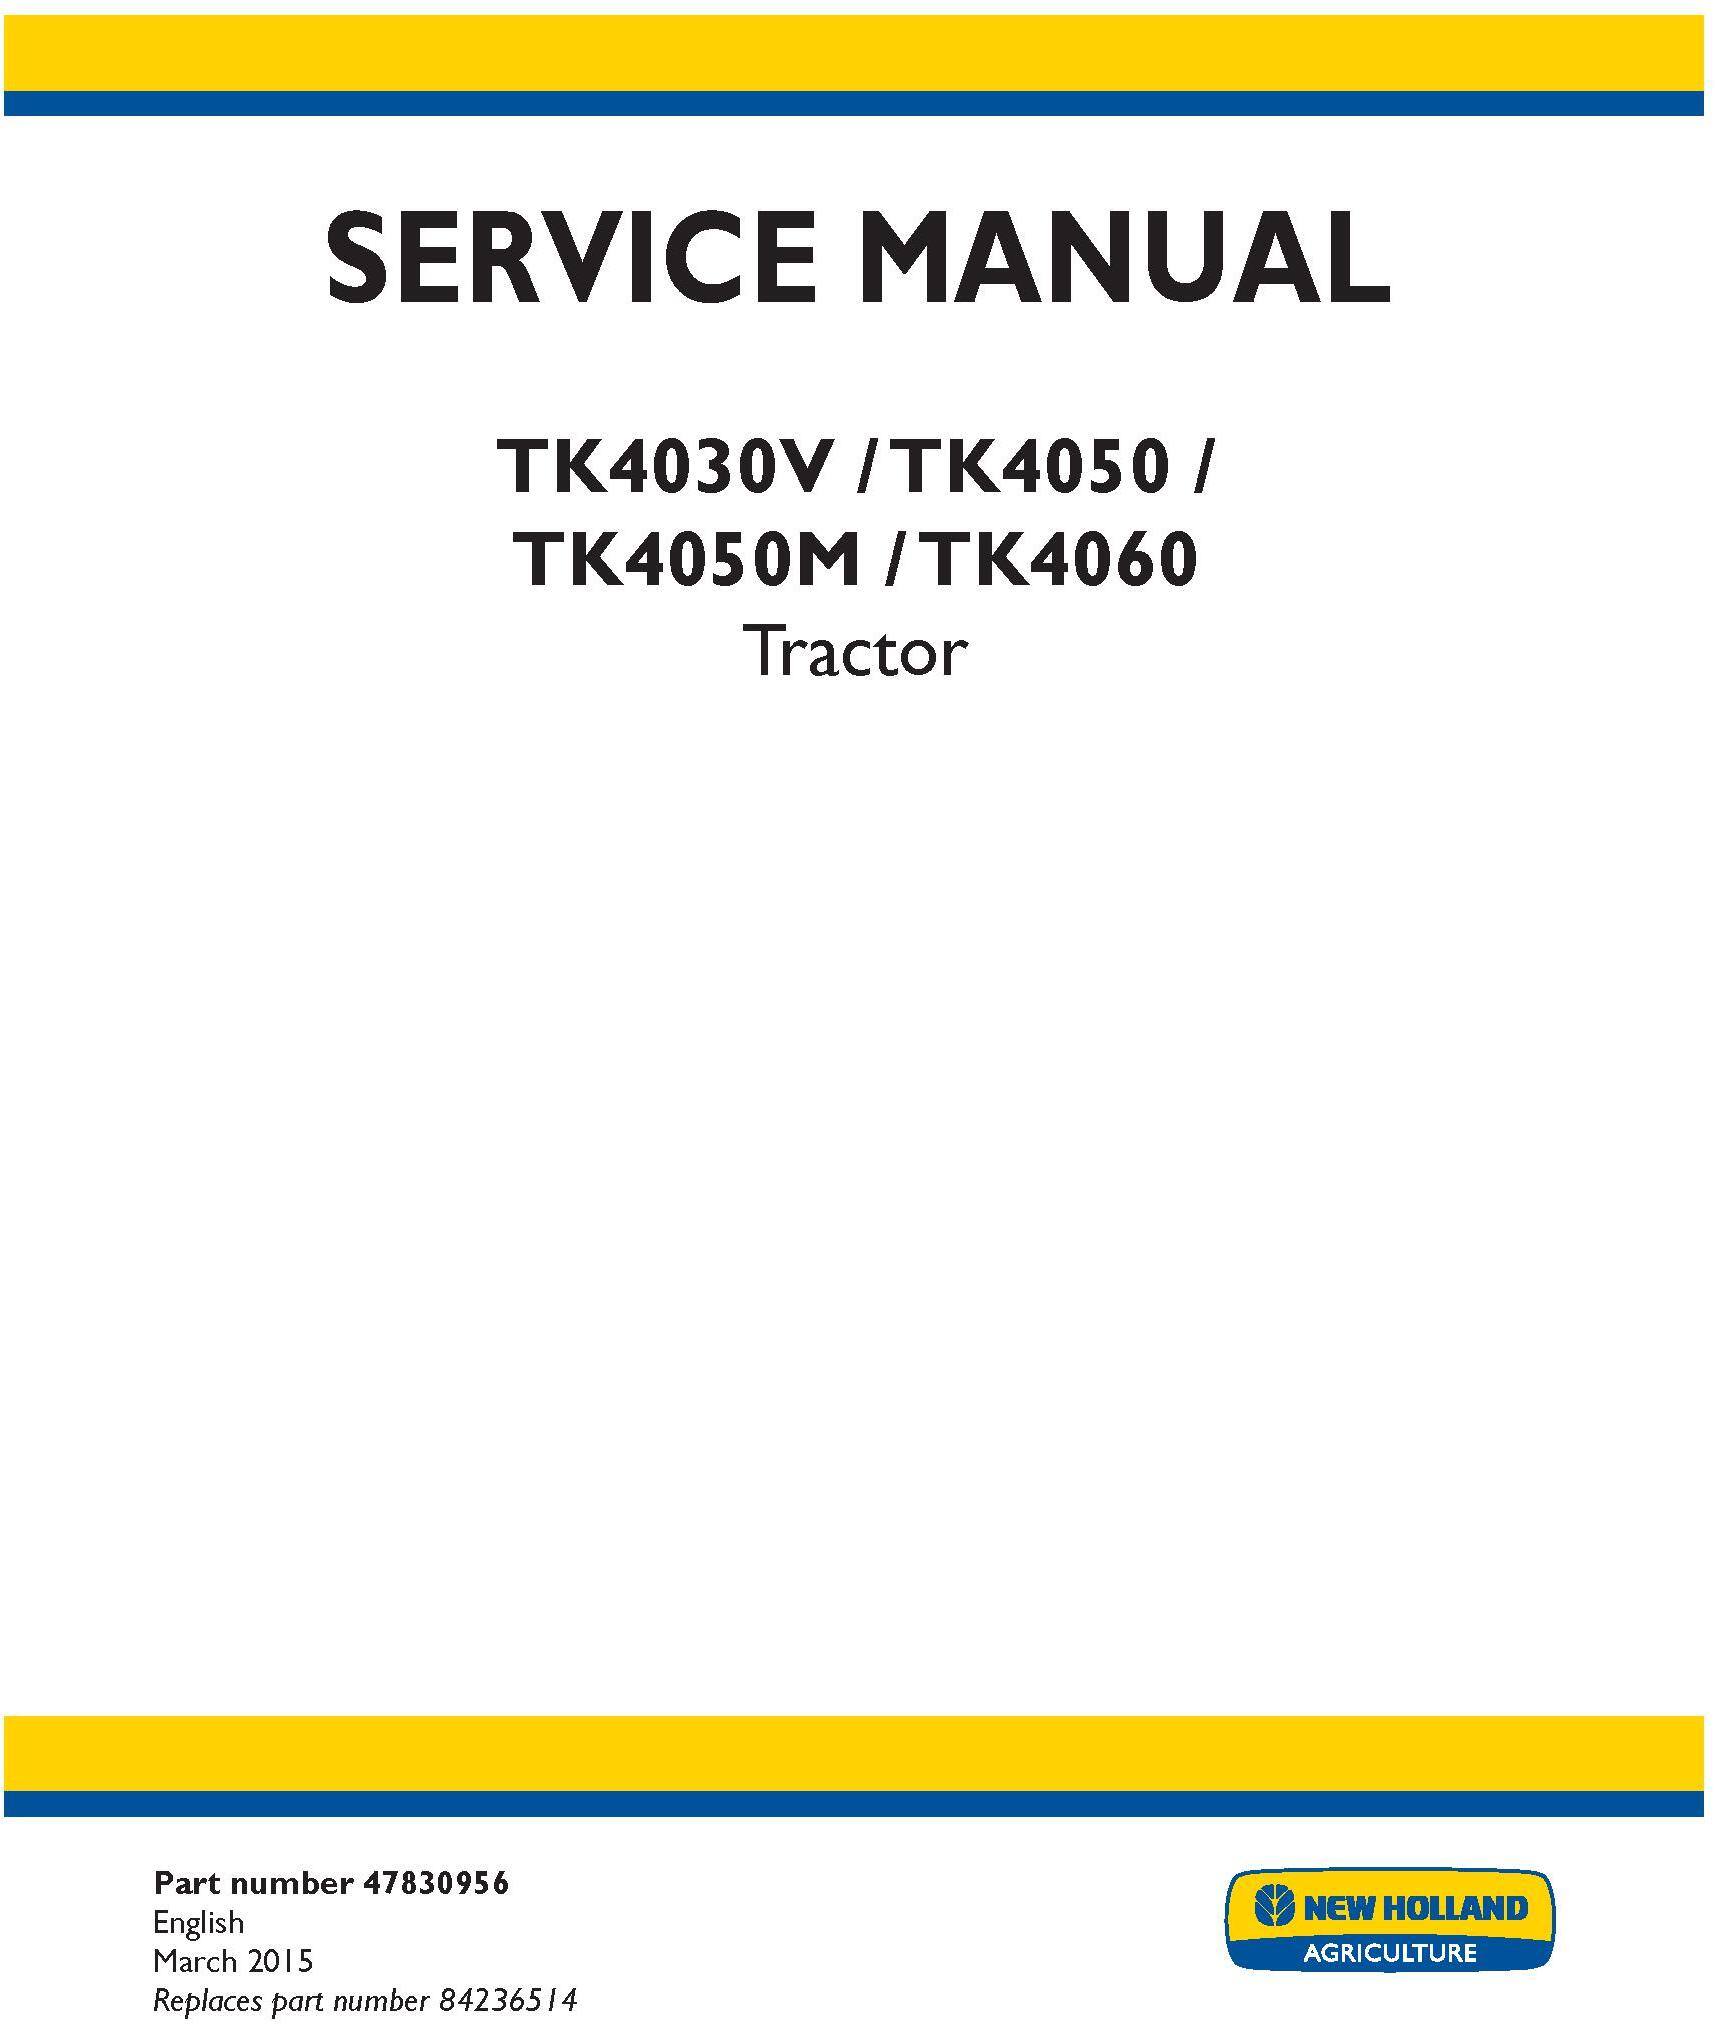 New Holland TK4030V, TK4050, TK4050M, TK4060 tractor Service Manual (North America) - 19420